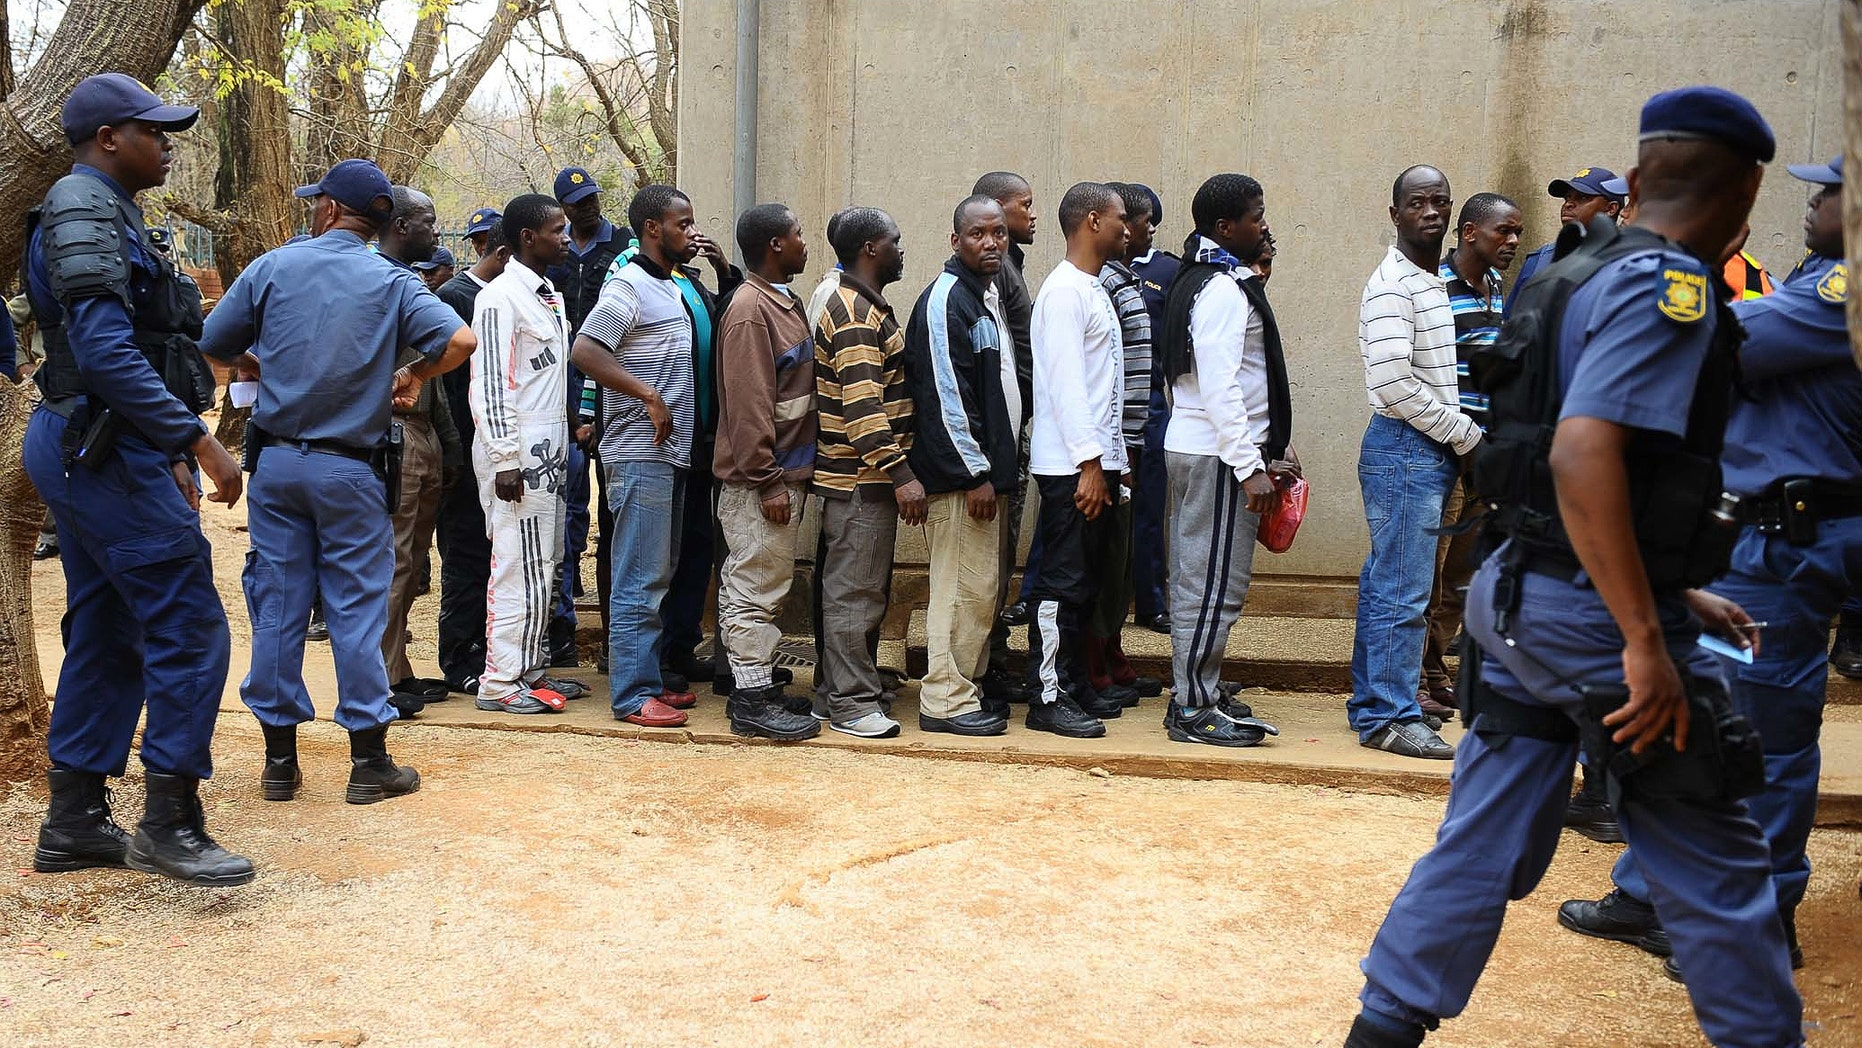 Aug. 27, 2012: Unidentified arrested mine workers await to be escorted into the court by police offers at the Ga-Rankuwa Magistrate Court in Pretoria, South Africa.